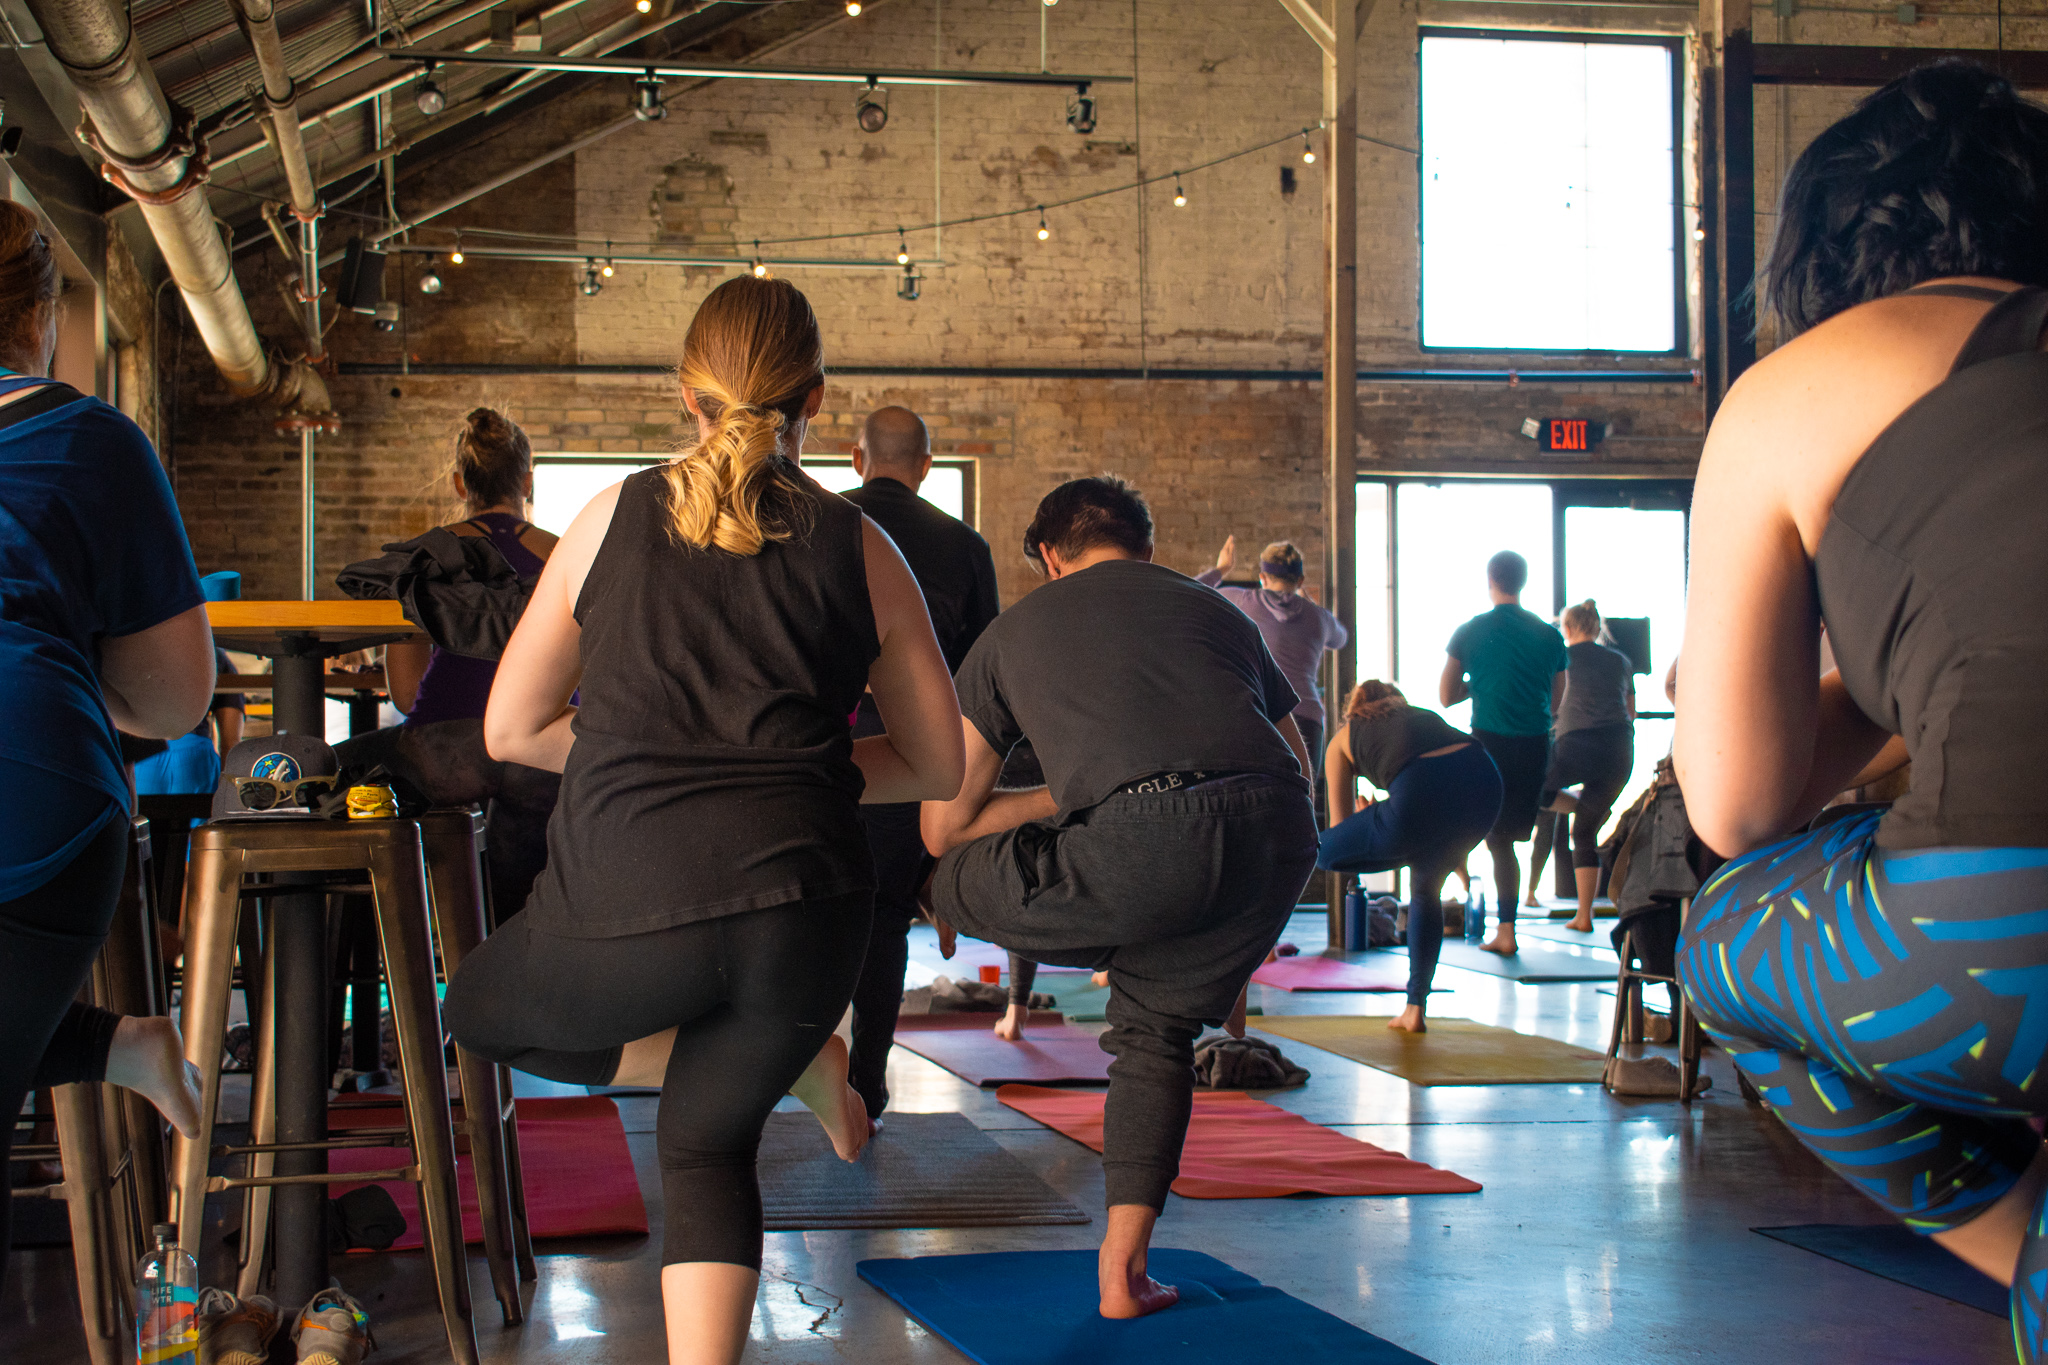 uprooted-traveler-yoga-and-pint-vegan-guide-what-to-do-minneapolis-st-paul.jpg